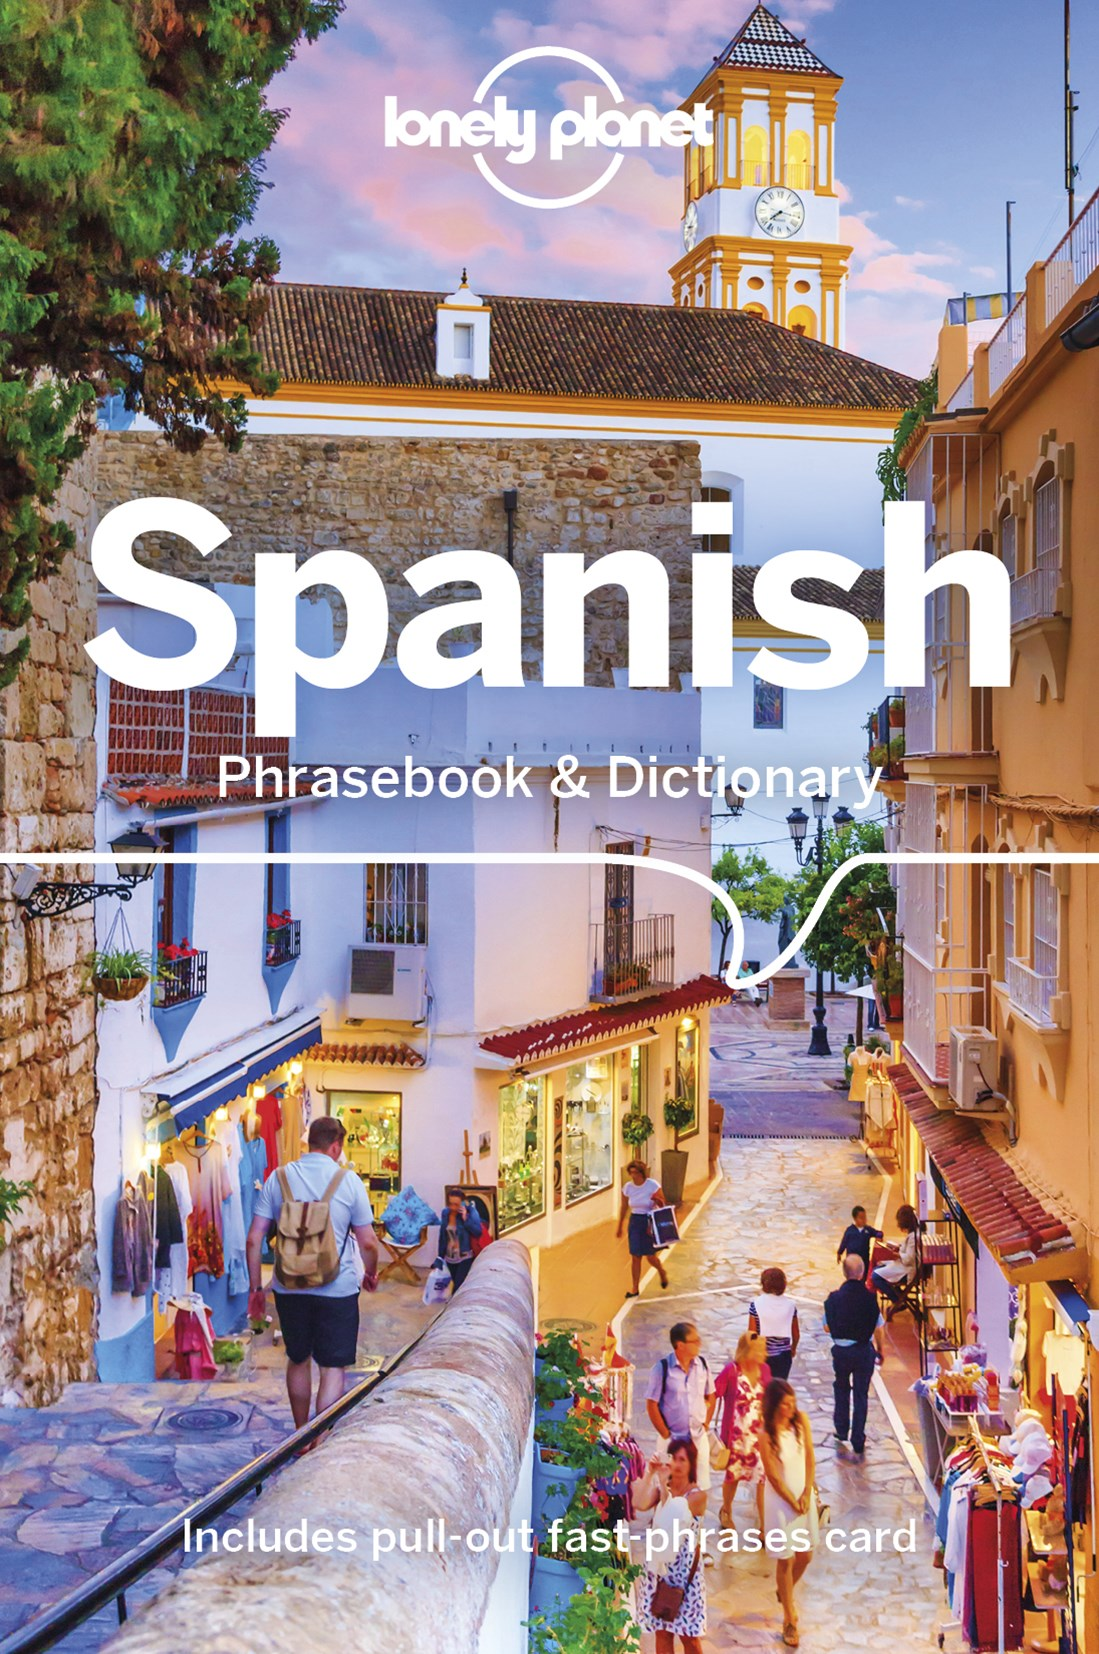 Spanish Phrasebook & Dictionary